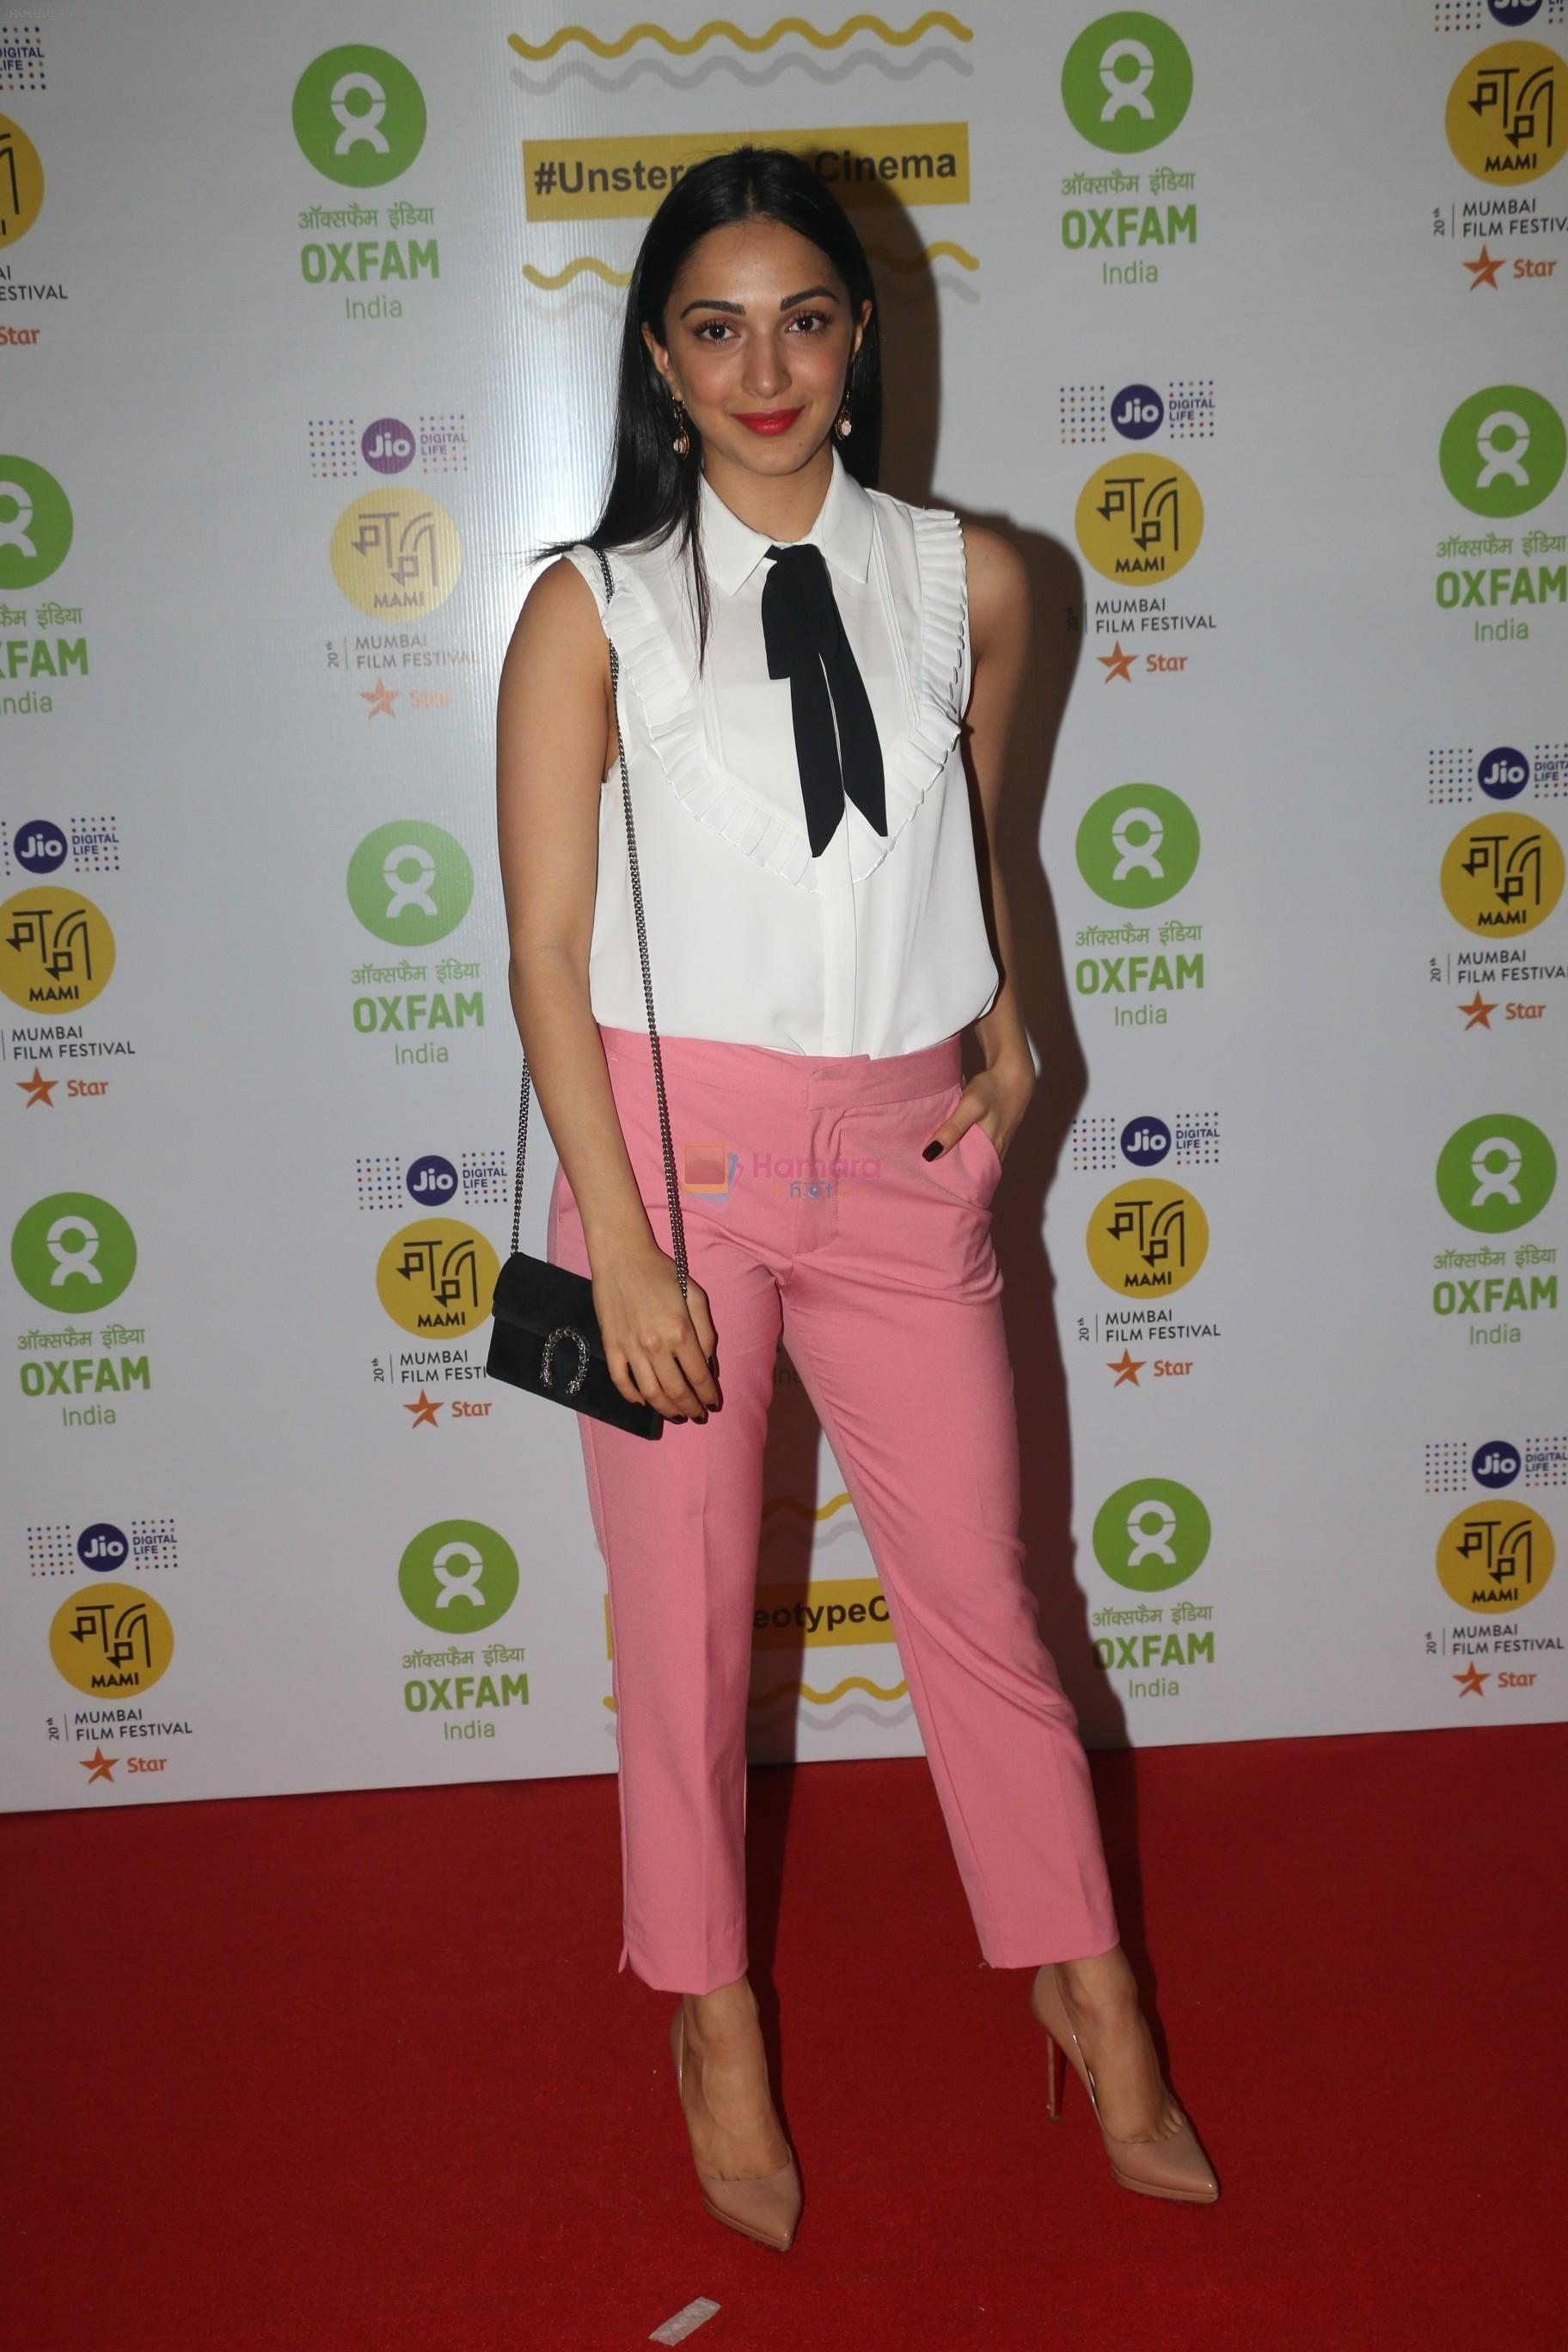 Kiara Advani at the Red Carpet For Oxfam Mami Women In Film Brunch on 28th Oct 2018